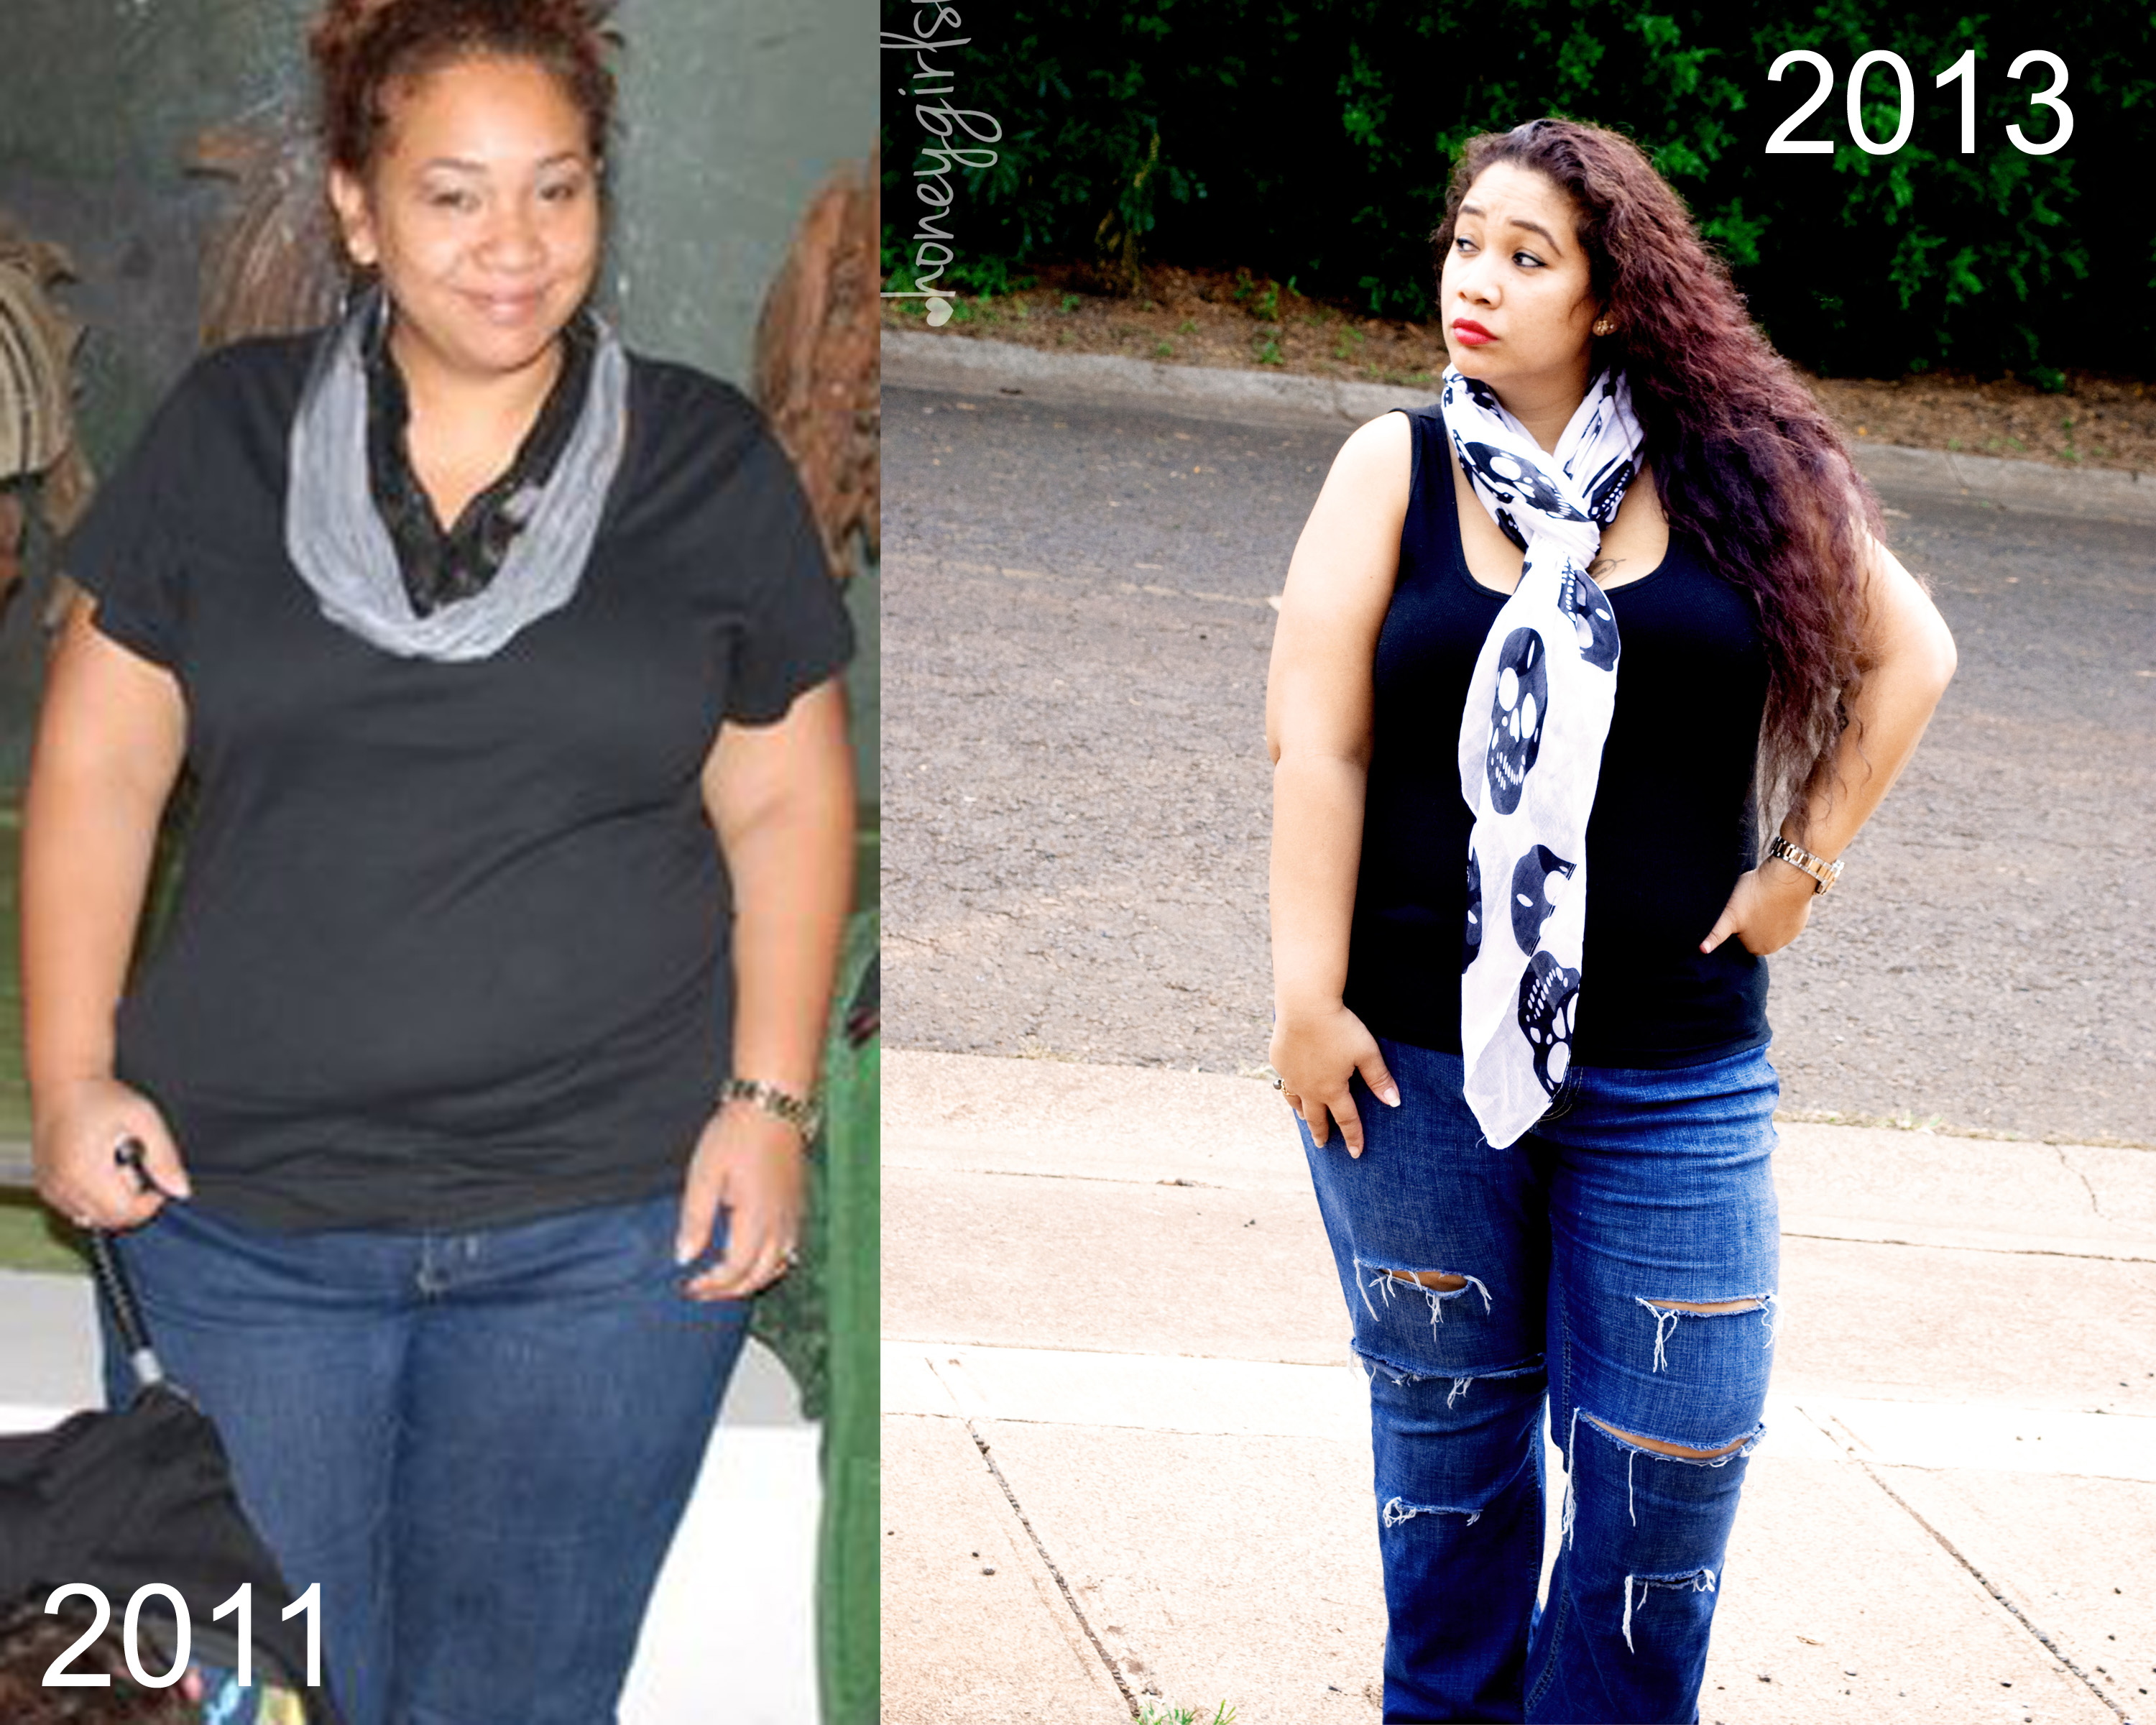 weight loss update 2